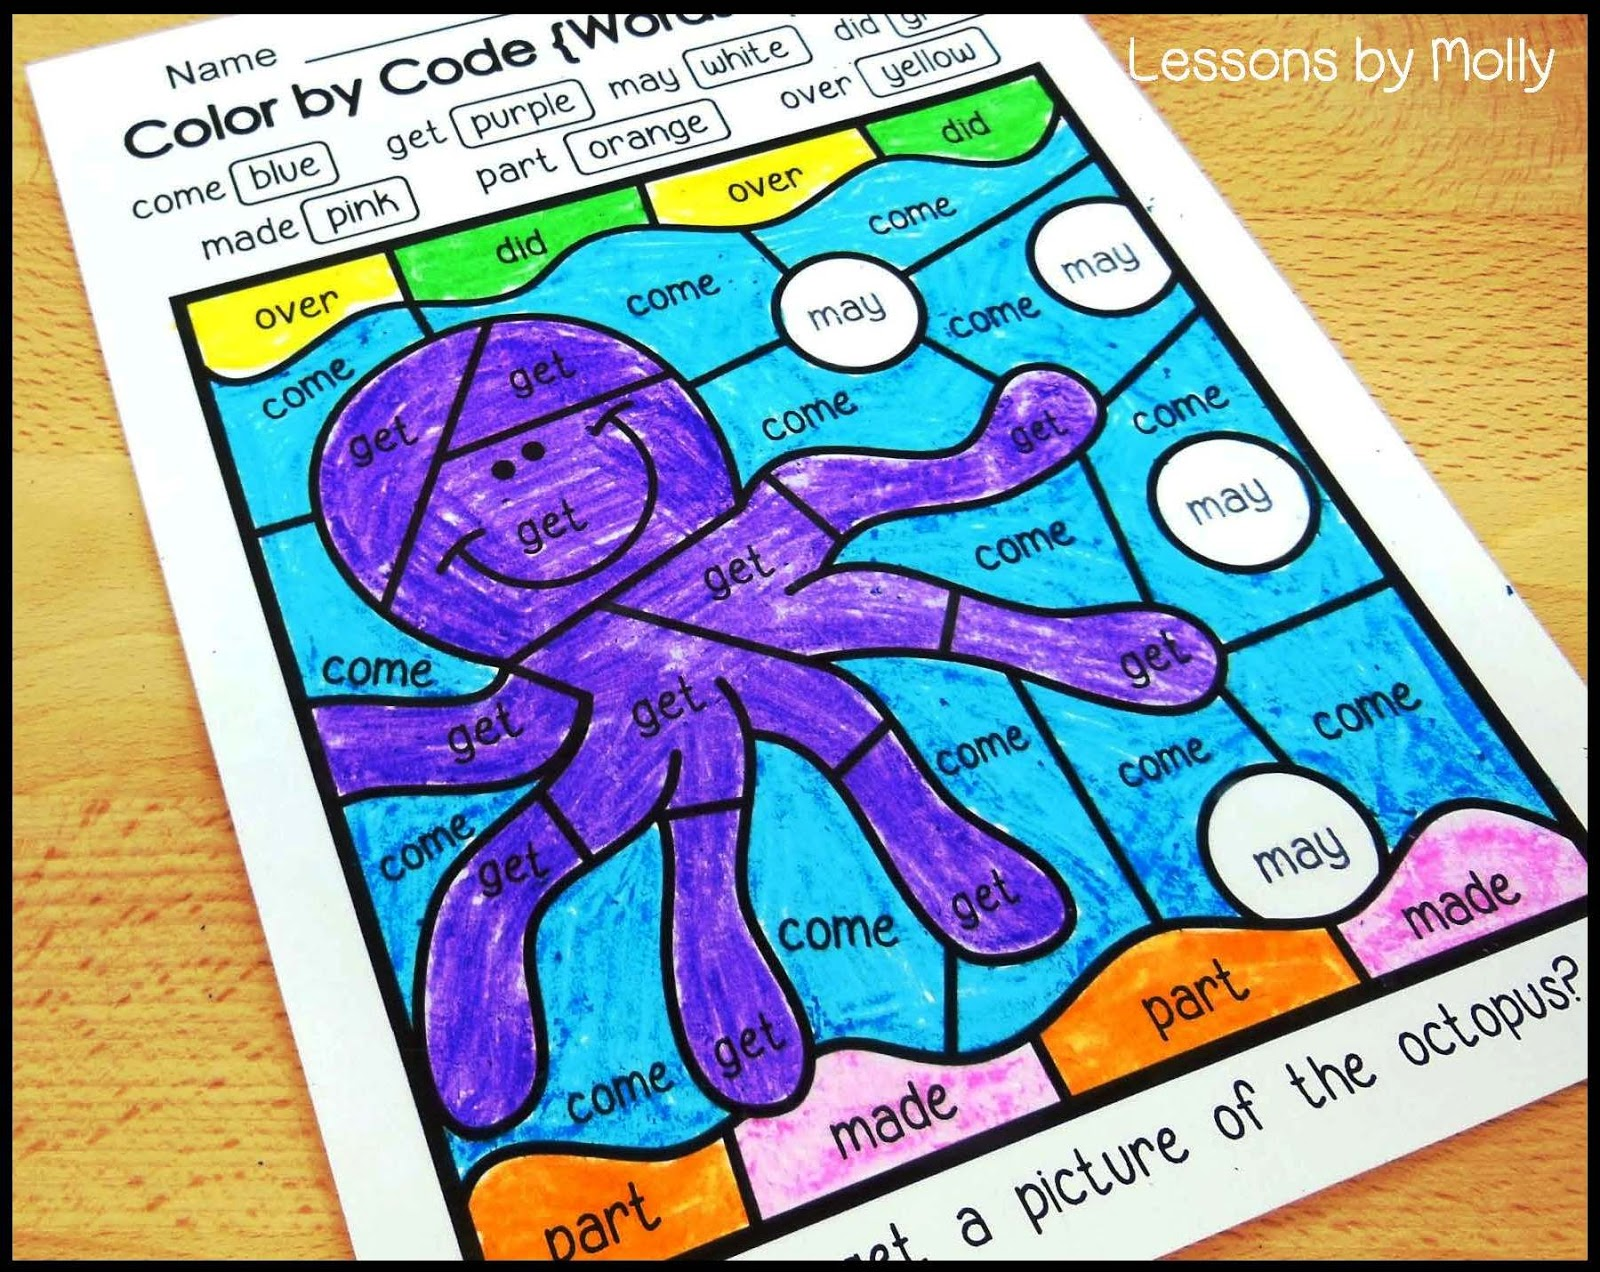 Lessons by Molly: Color by Code Sight Words for First and Second Grade